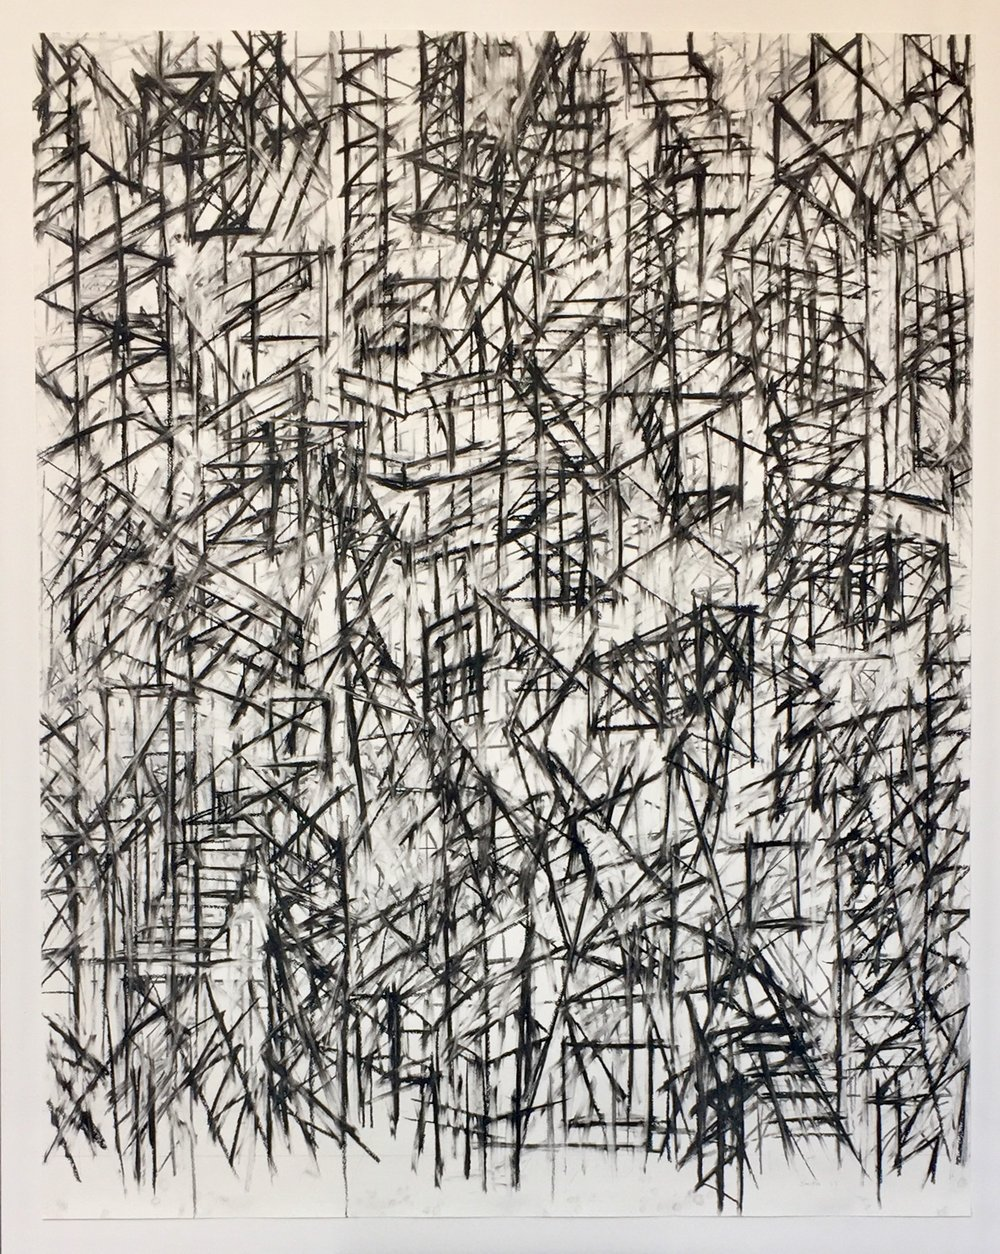 Amazonas, -4.2248, -64.2160,  2017  Charcoal and pastel on paper  53H x 42W inches unframed  58H x 47W inches framed